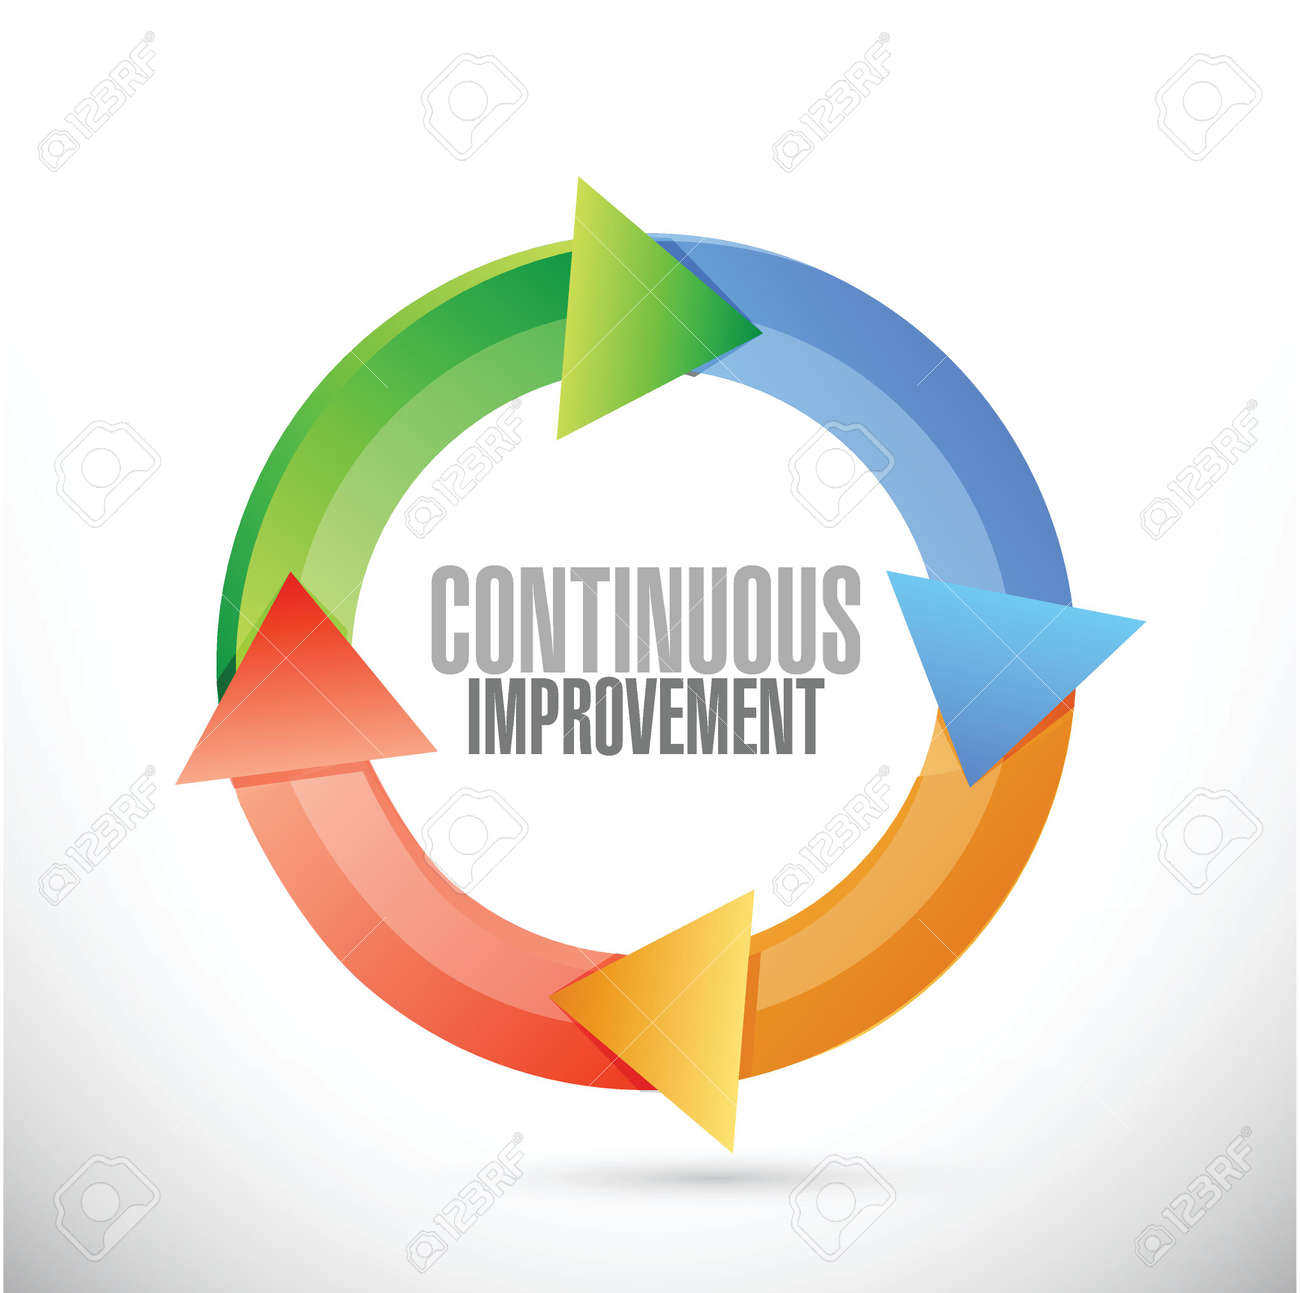 Image result for continuous improvement